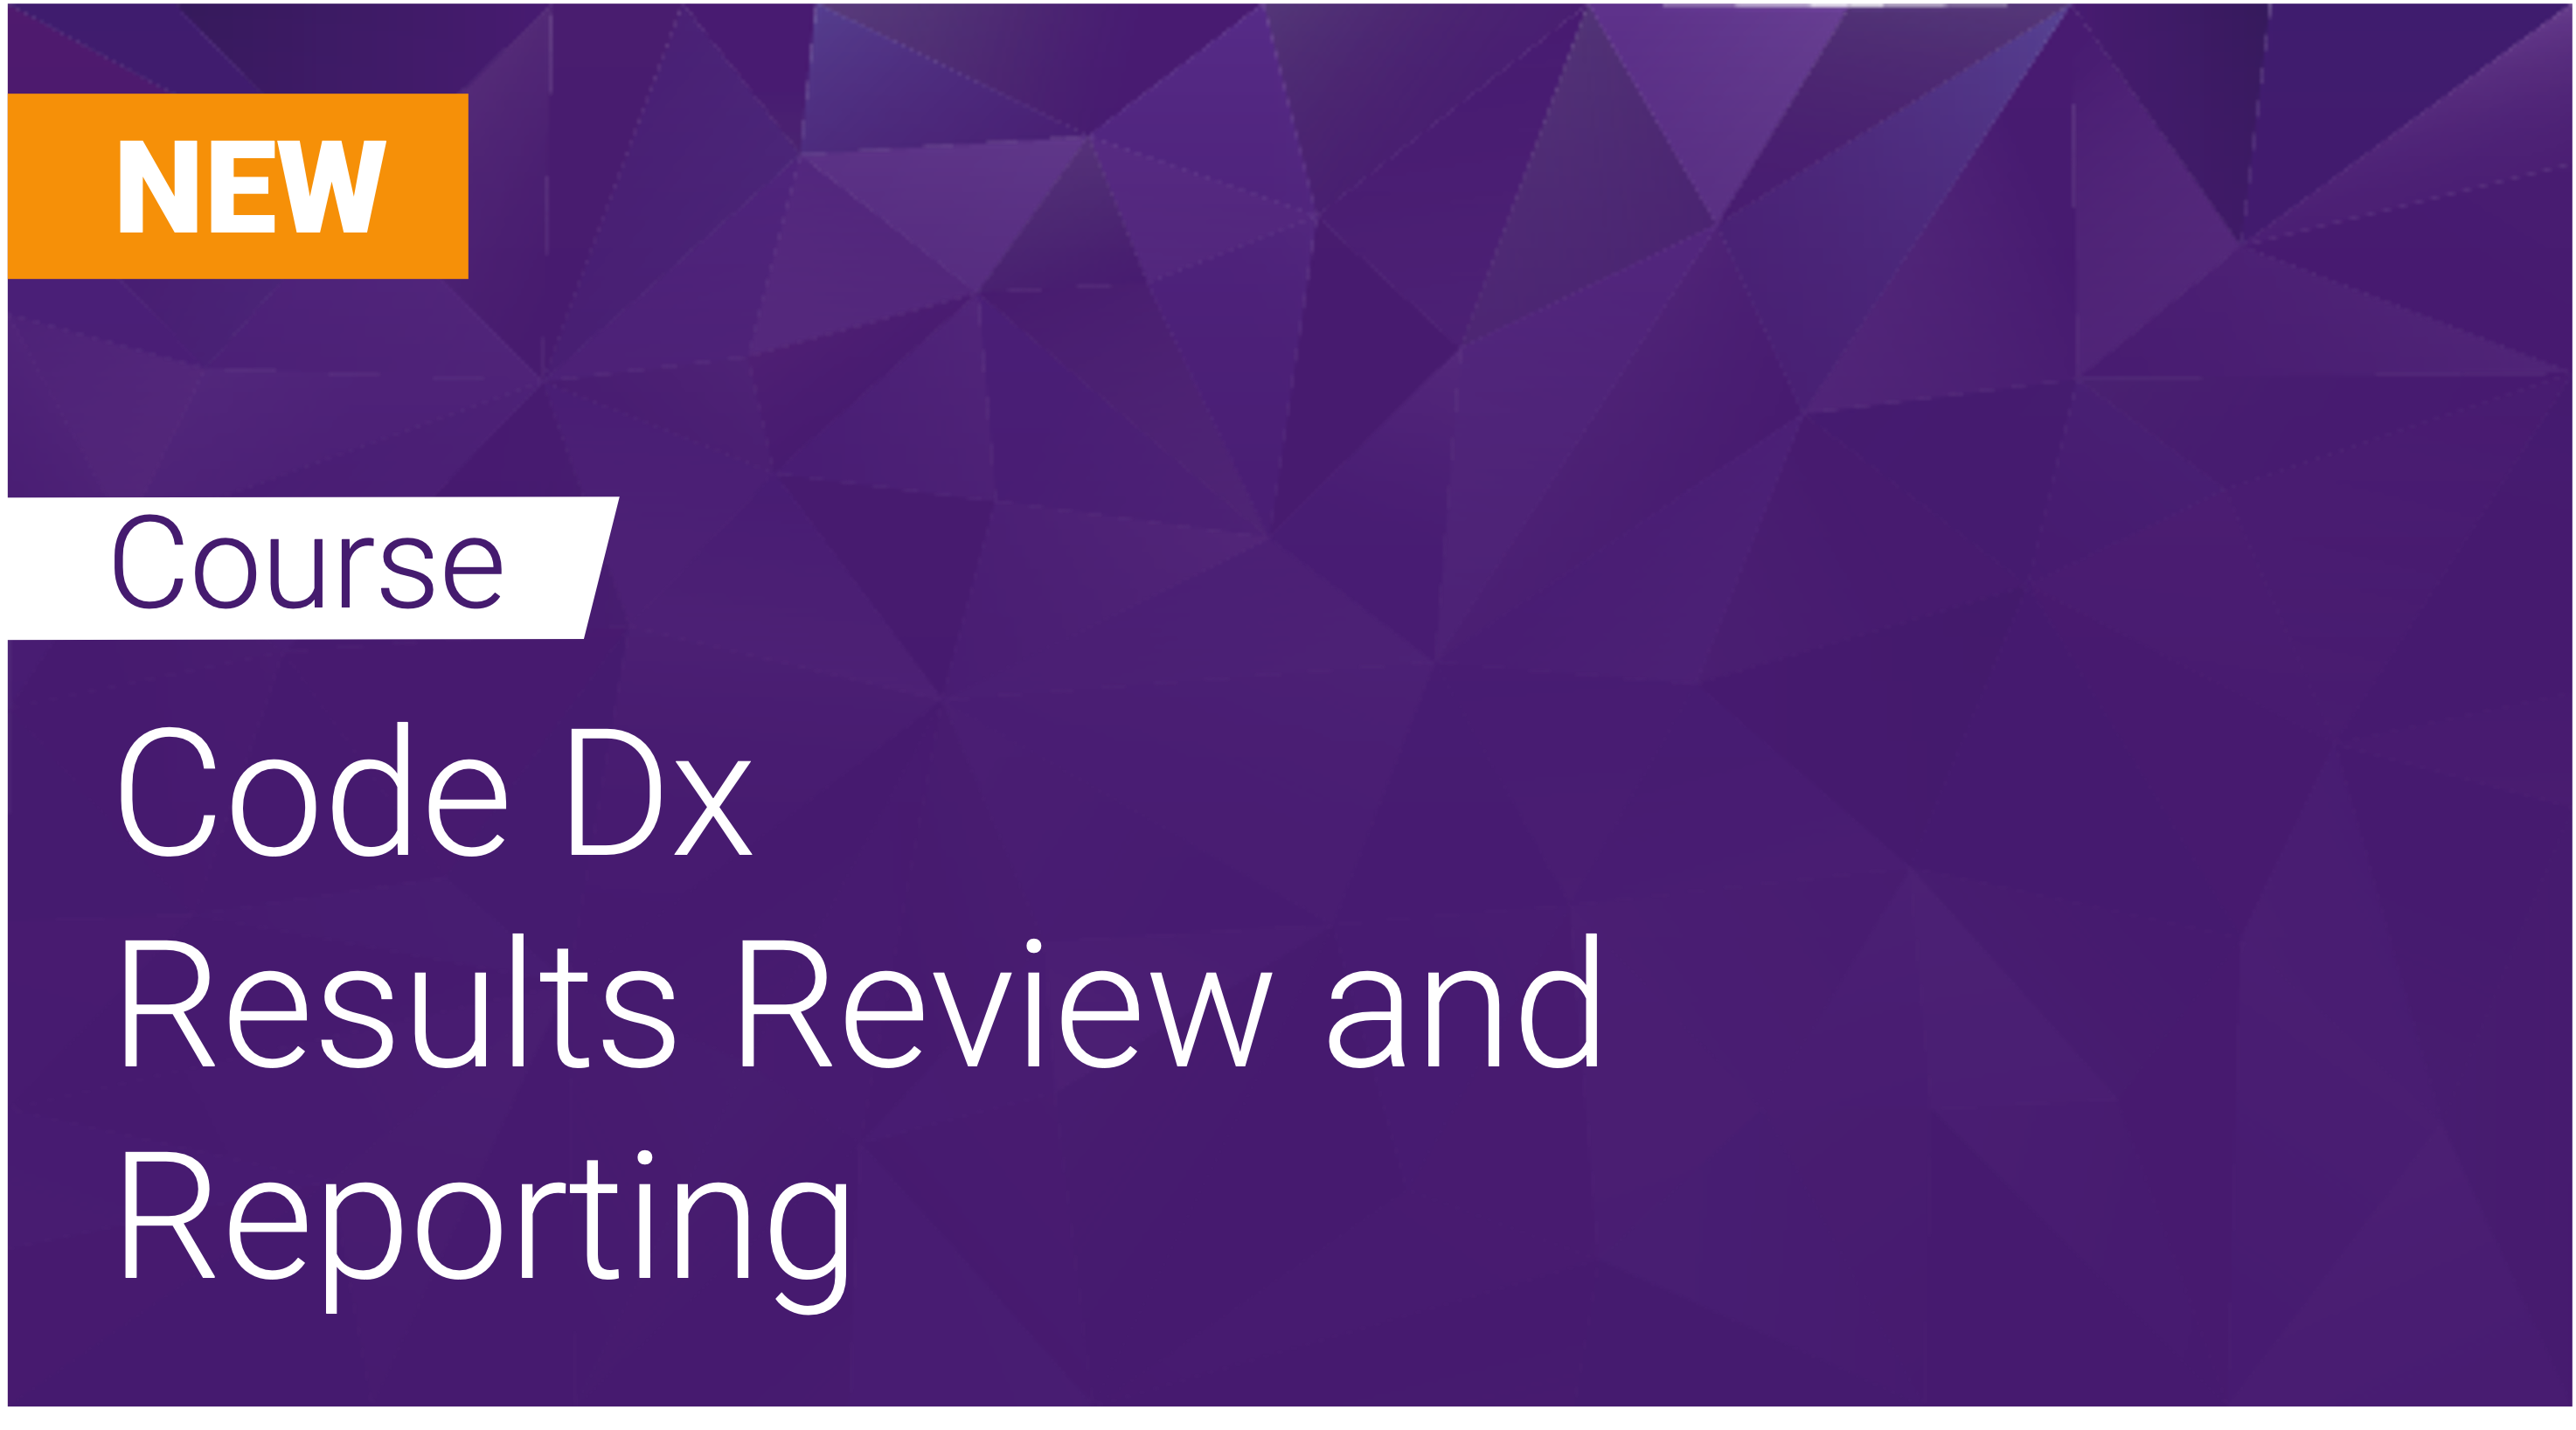 Code Dx: Results Review and Reporting